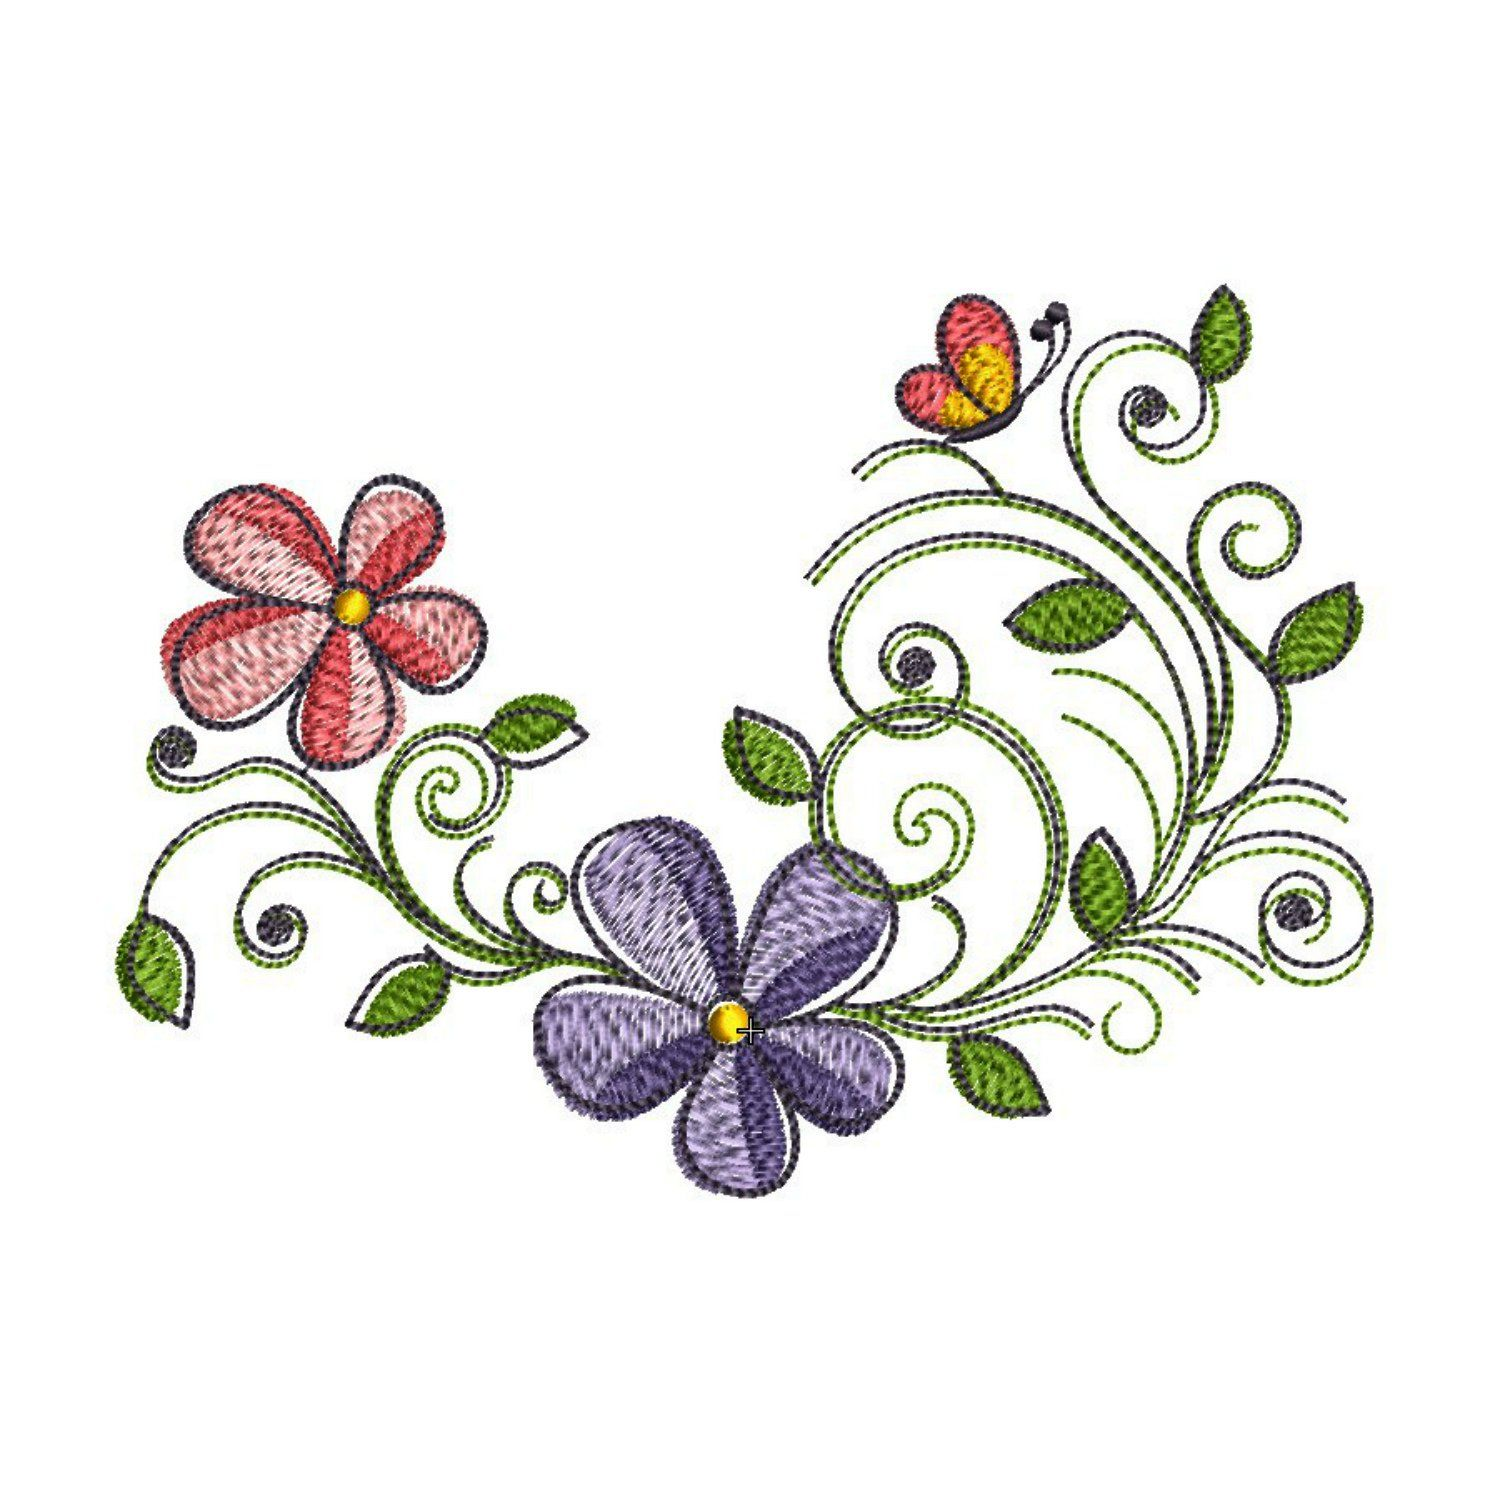 Spring Flowers Embroidery Designs 5x7, INSTANT DOWNLOAD